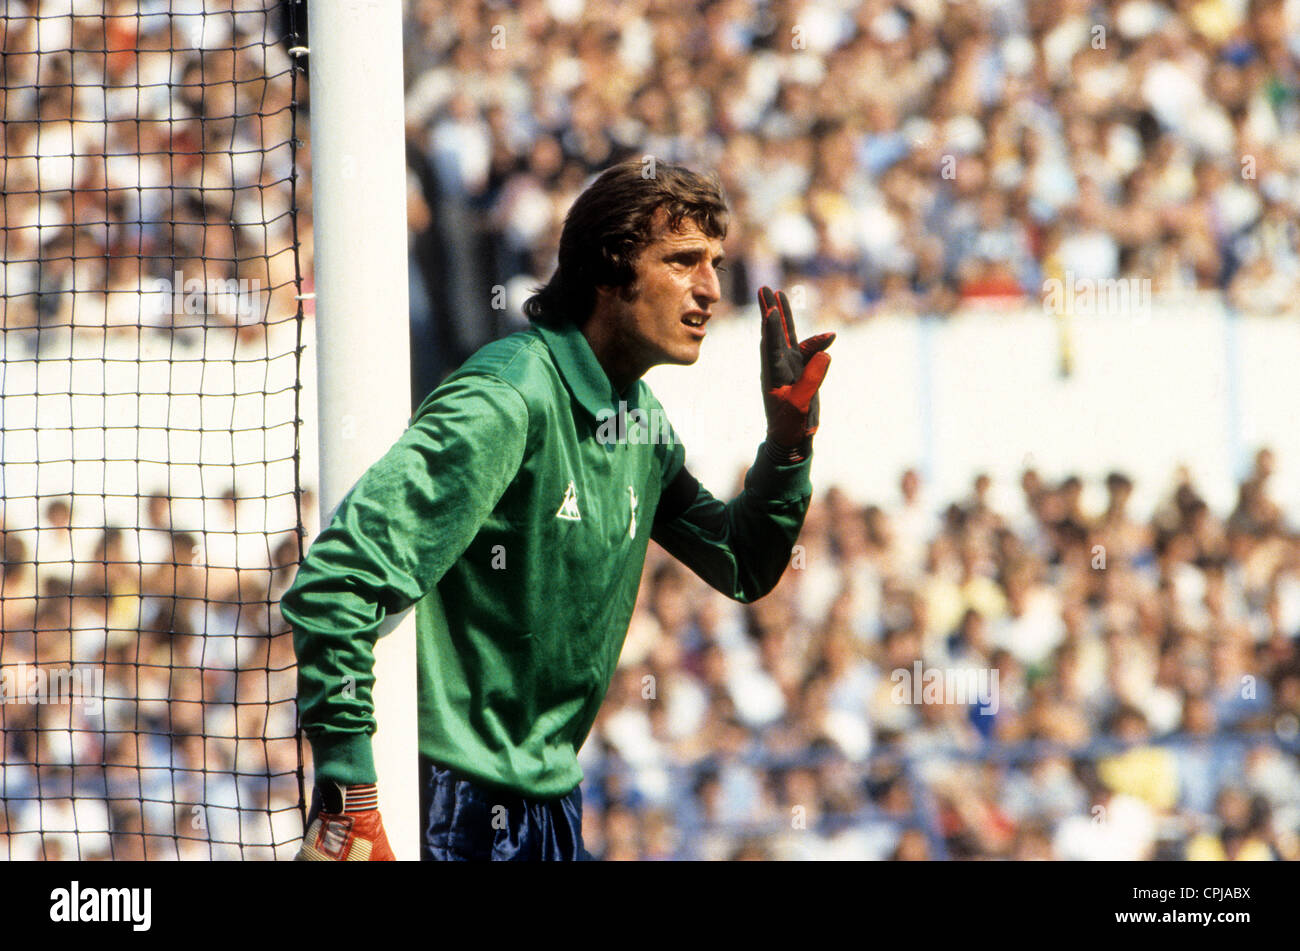 Ray Clemence High Resolution Stock Photography and Images - Alamy